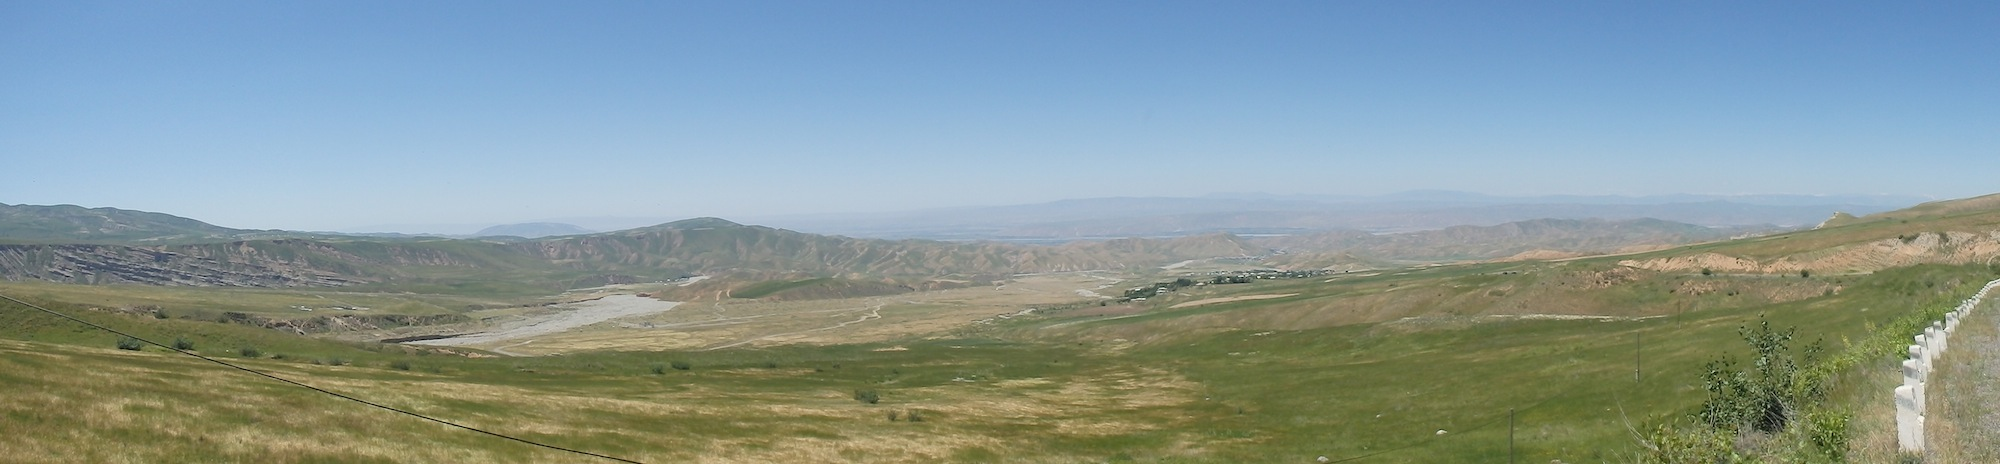 Hazrat-e Shah Mountain Ranges east of Kulob (Tajikistan)